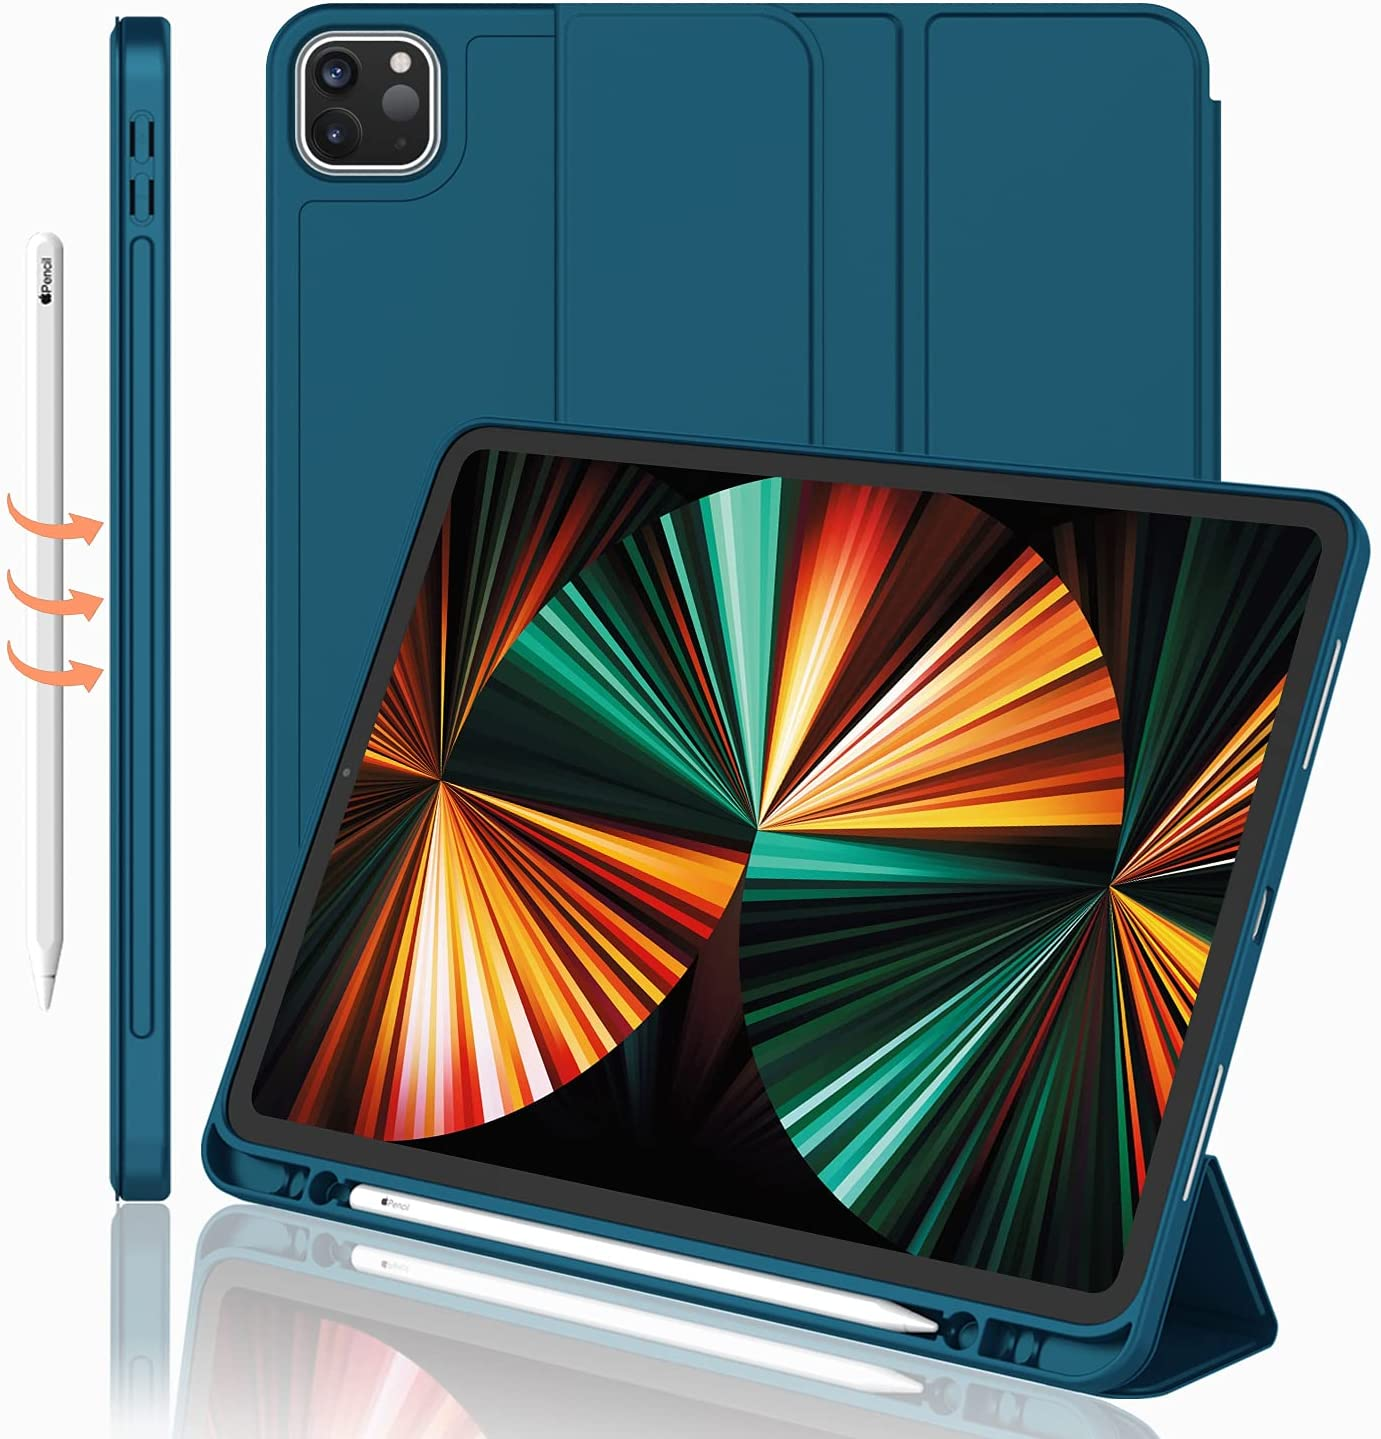 iMieet New iPad Pro 12.9 Case 2021(5th Gen) with Pencil Holder [Support iPad 2nd Pencil Charging/Pair],Trifold Stand Smart Case with Soft TPU Back,Auto Wake/Sleep(Teal)